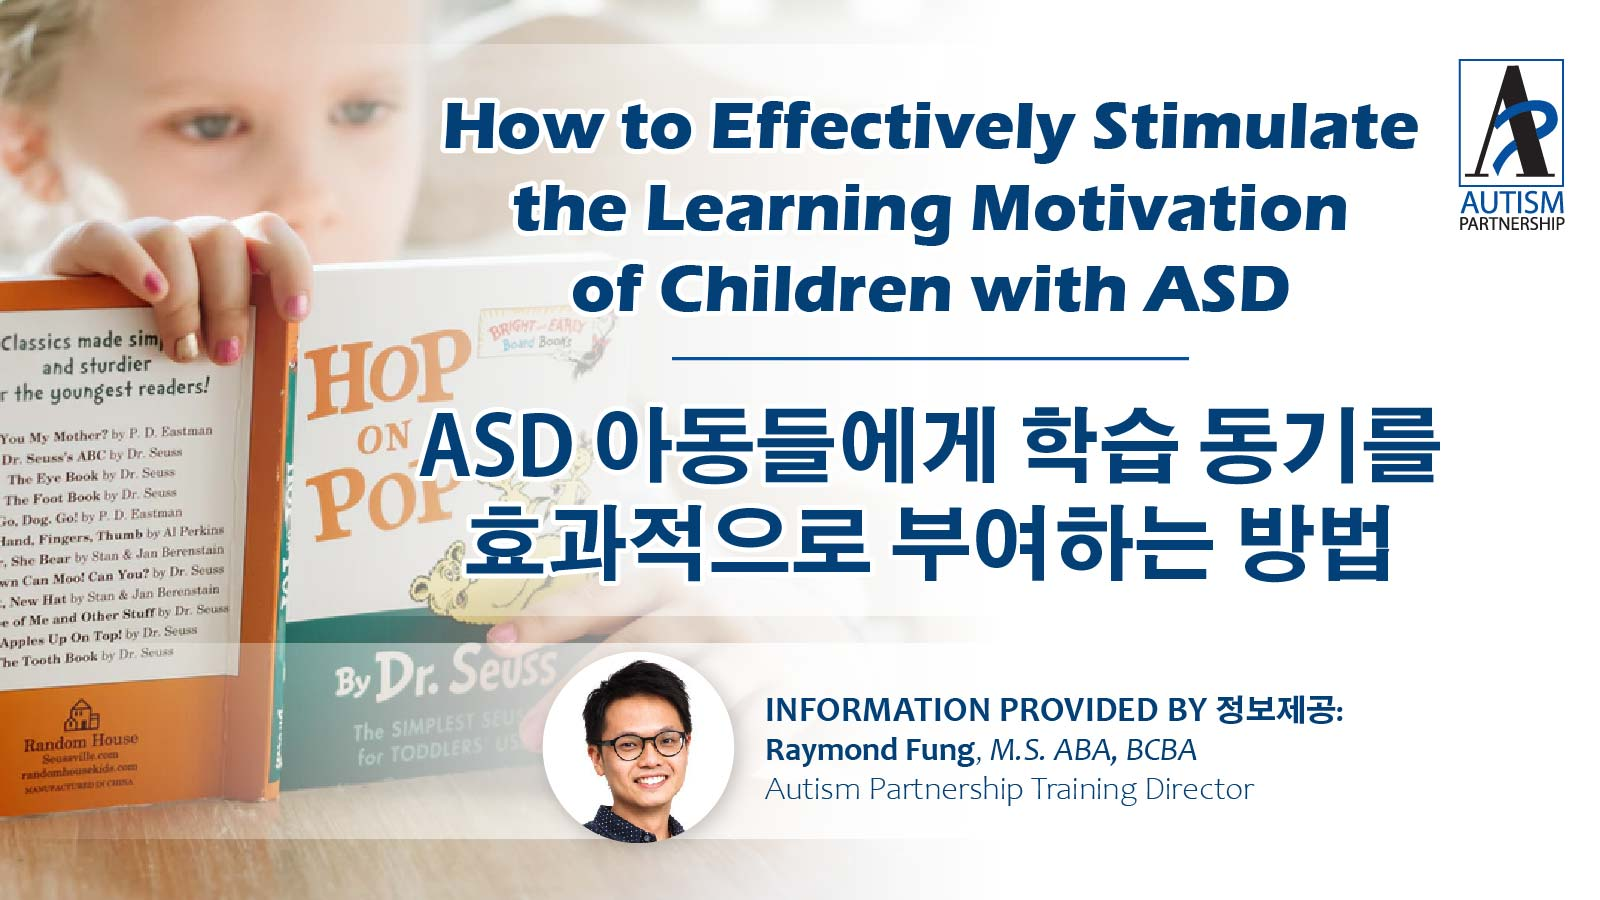 how-to-effectively-stimulate-the-learning-motivation-of-children-with-asd_fb-kr